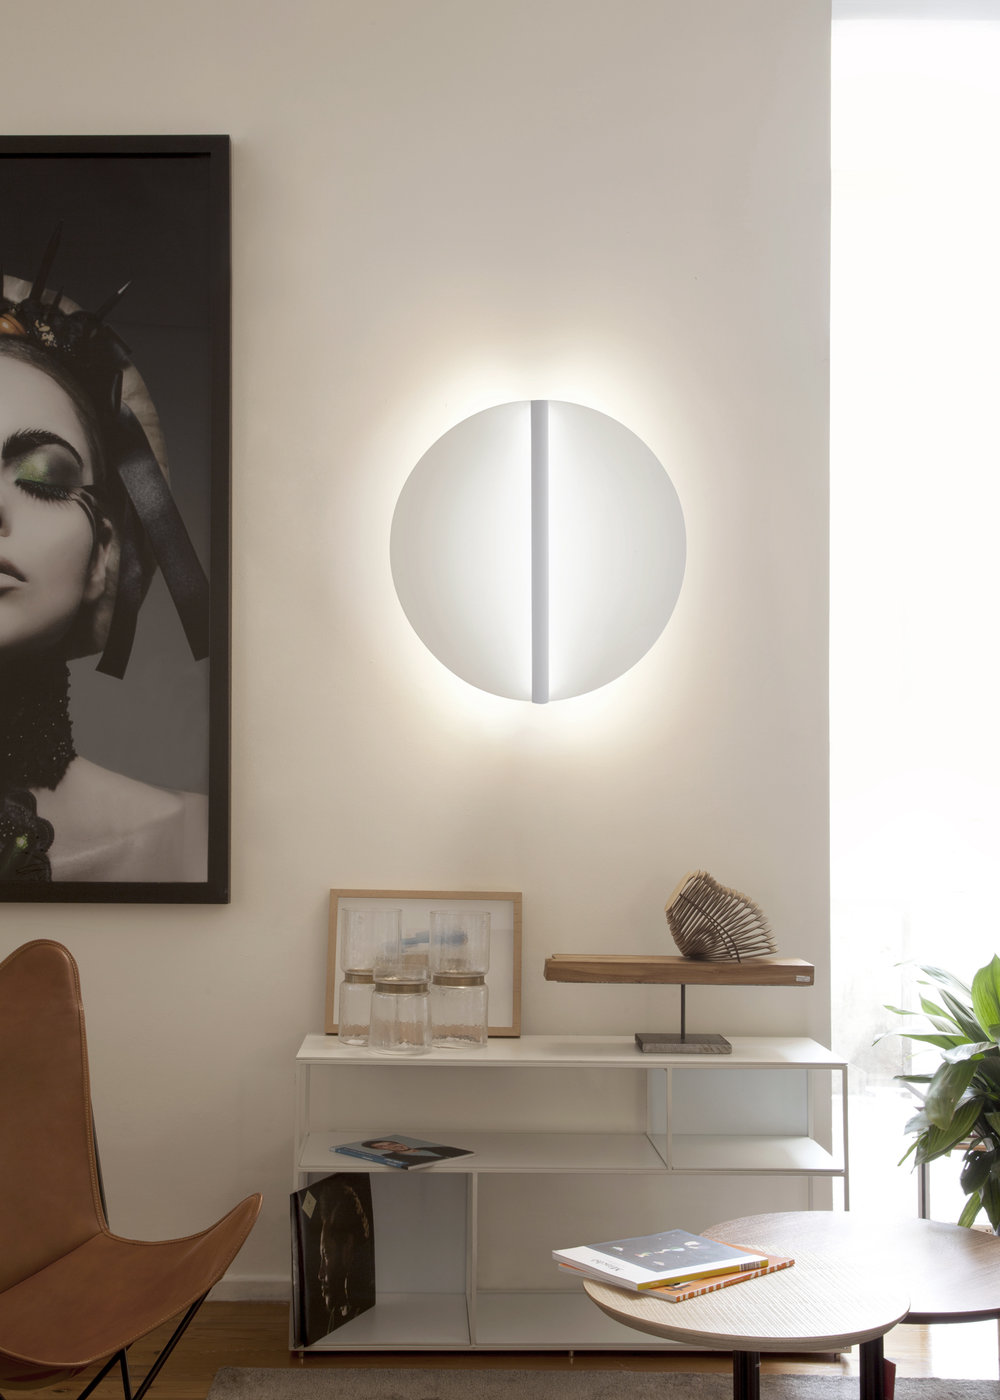 Shield Light designed by Kutarq Studio